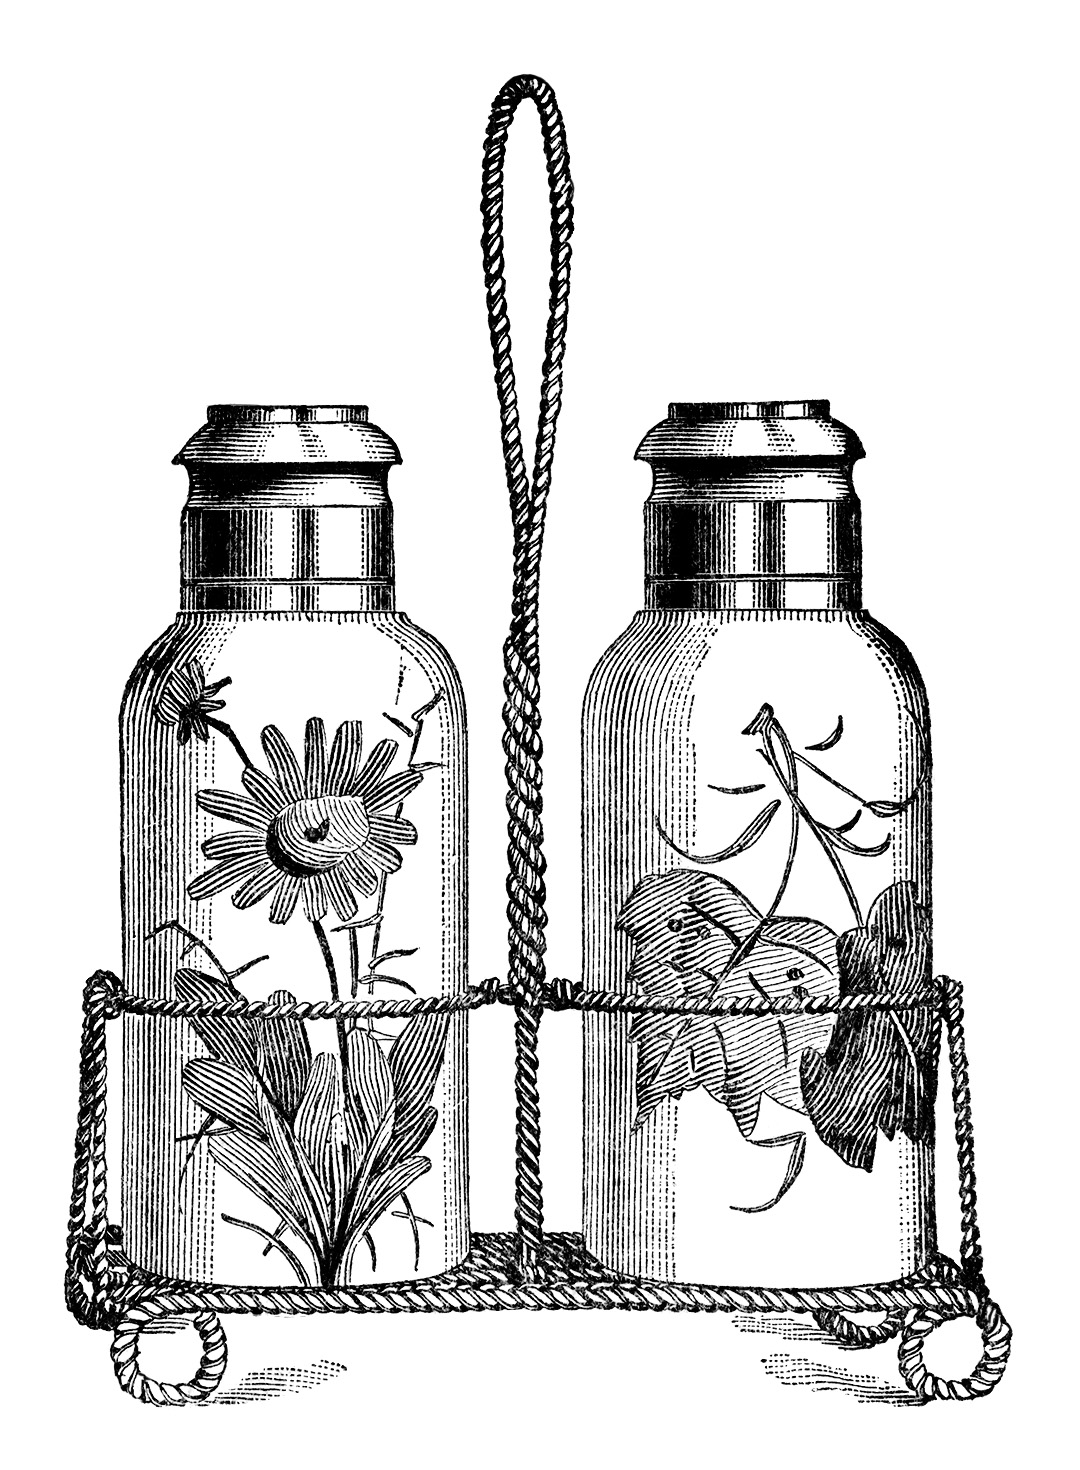 vintage kitchen clipart, salt pepper image, free black and white clip art, antique salt shaker, vintage food engraving